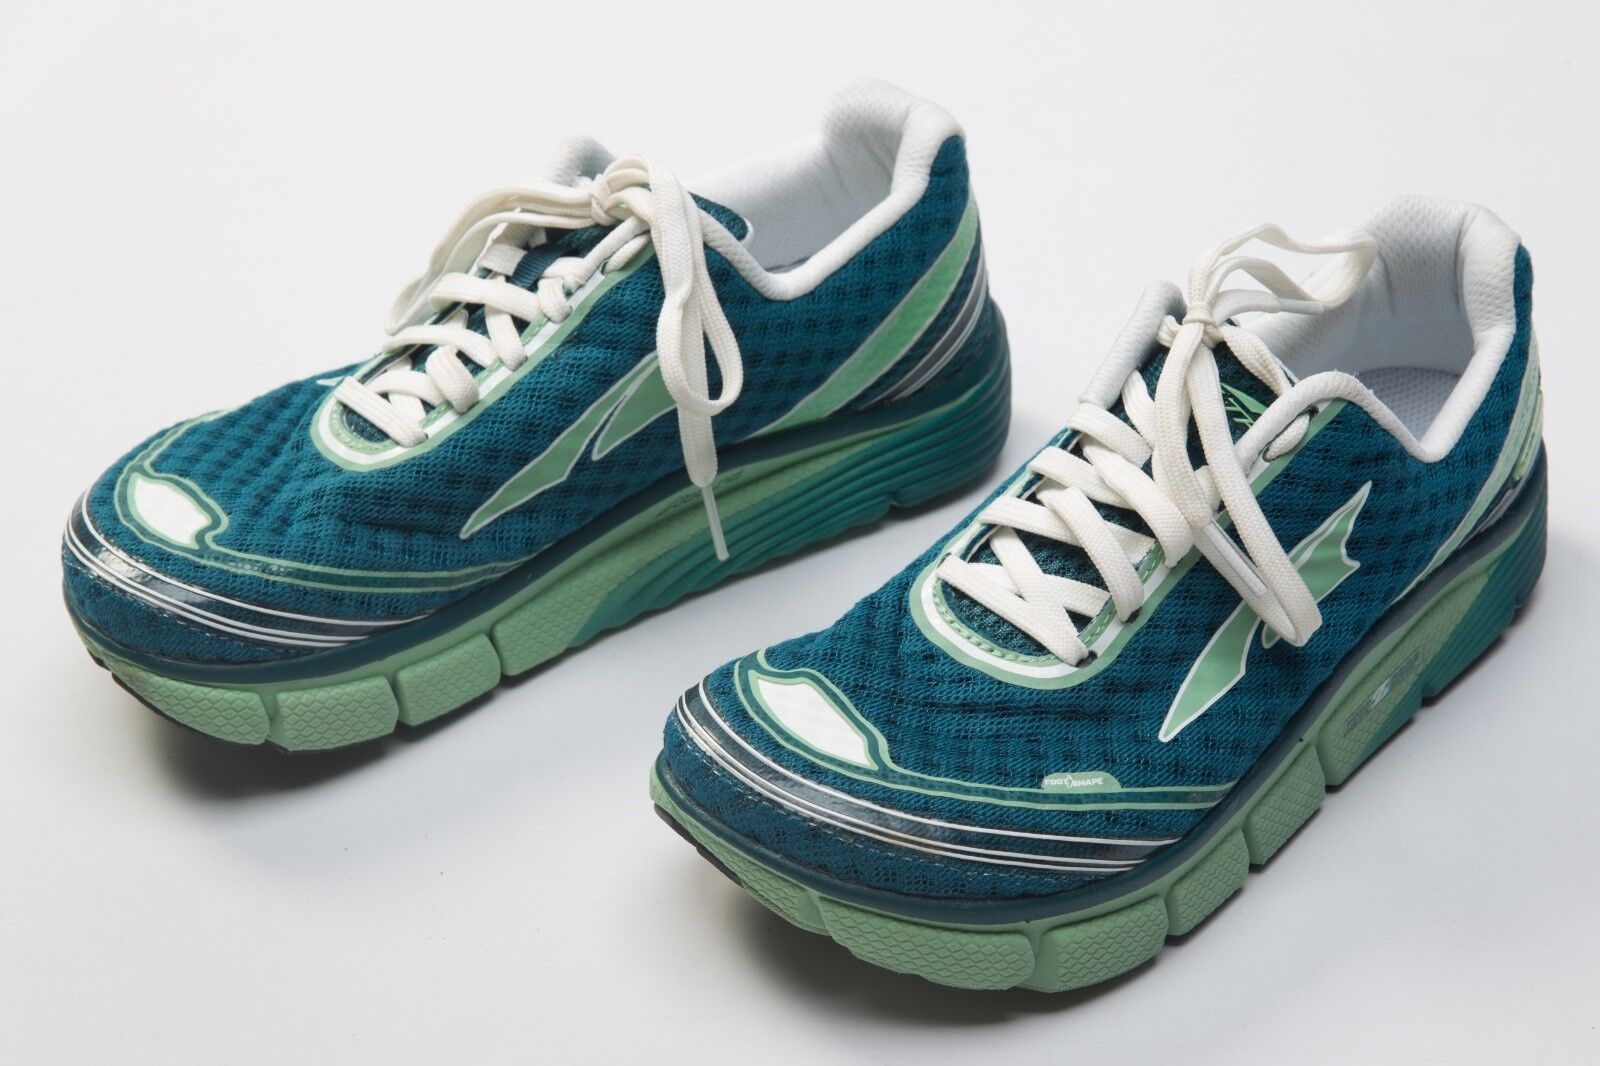 Women's Altra Torin Torin Torin 2.0 Running Athletic Sneakers shoes Size Sz US 6.5 US6.5 daeeaf